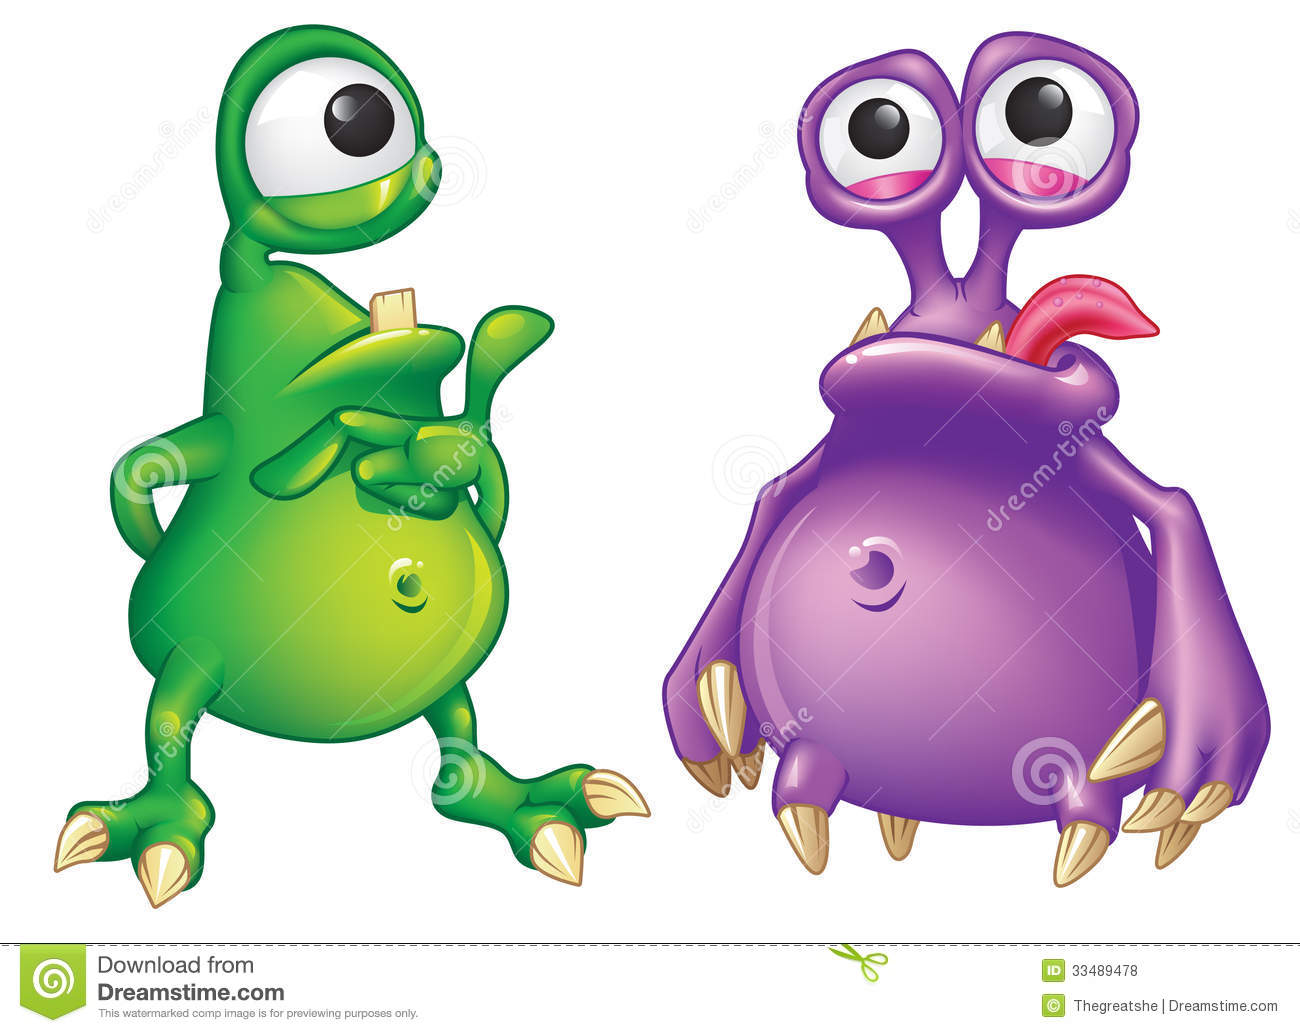 Aliens clipart cartoon. Urgent pictures of unknown